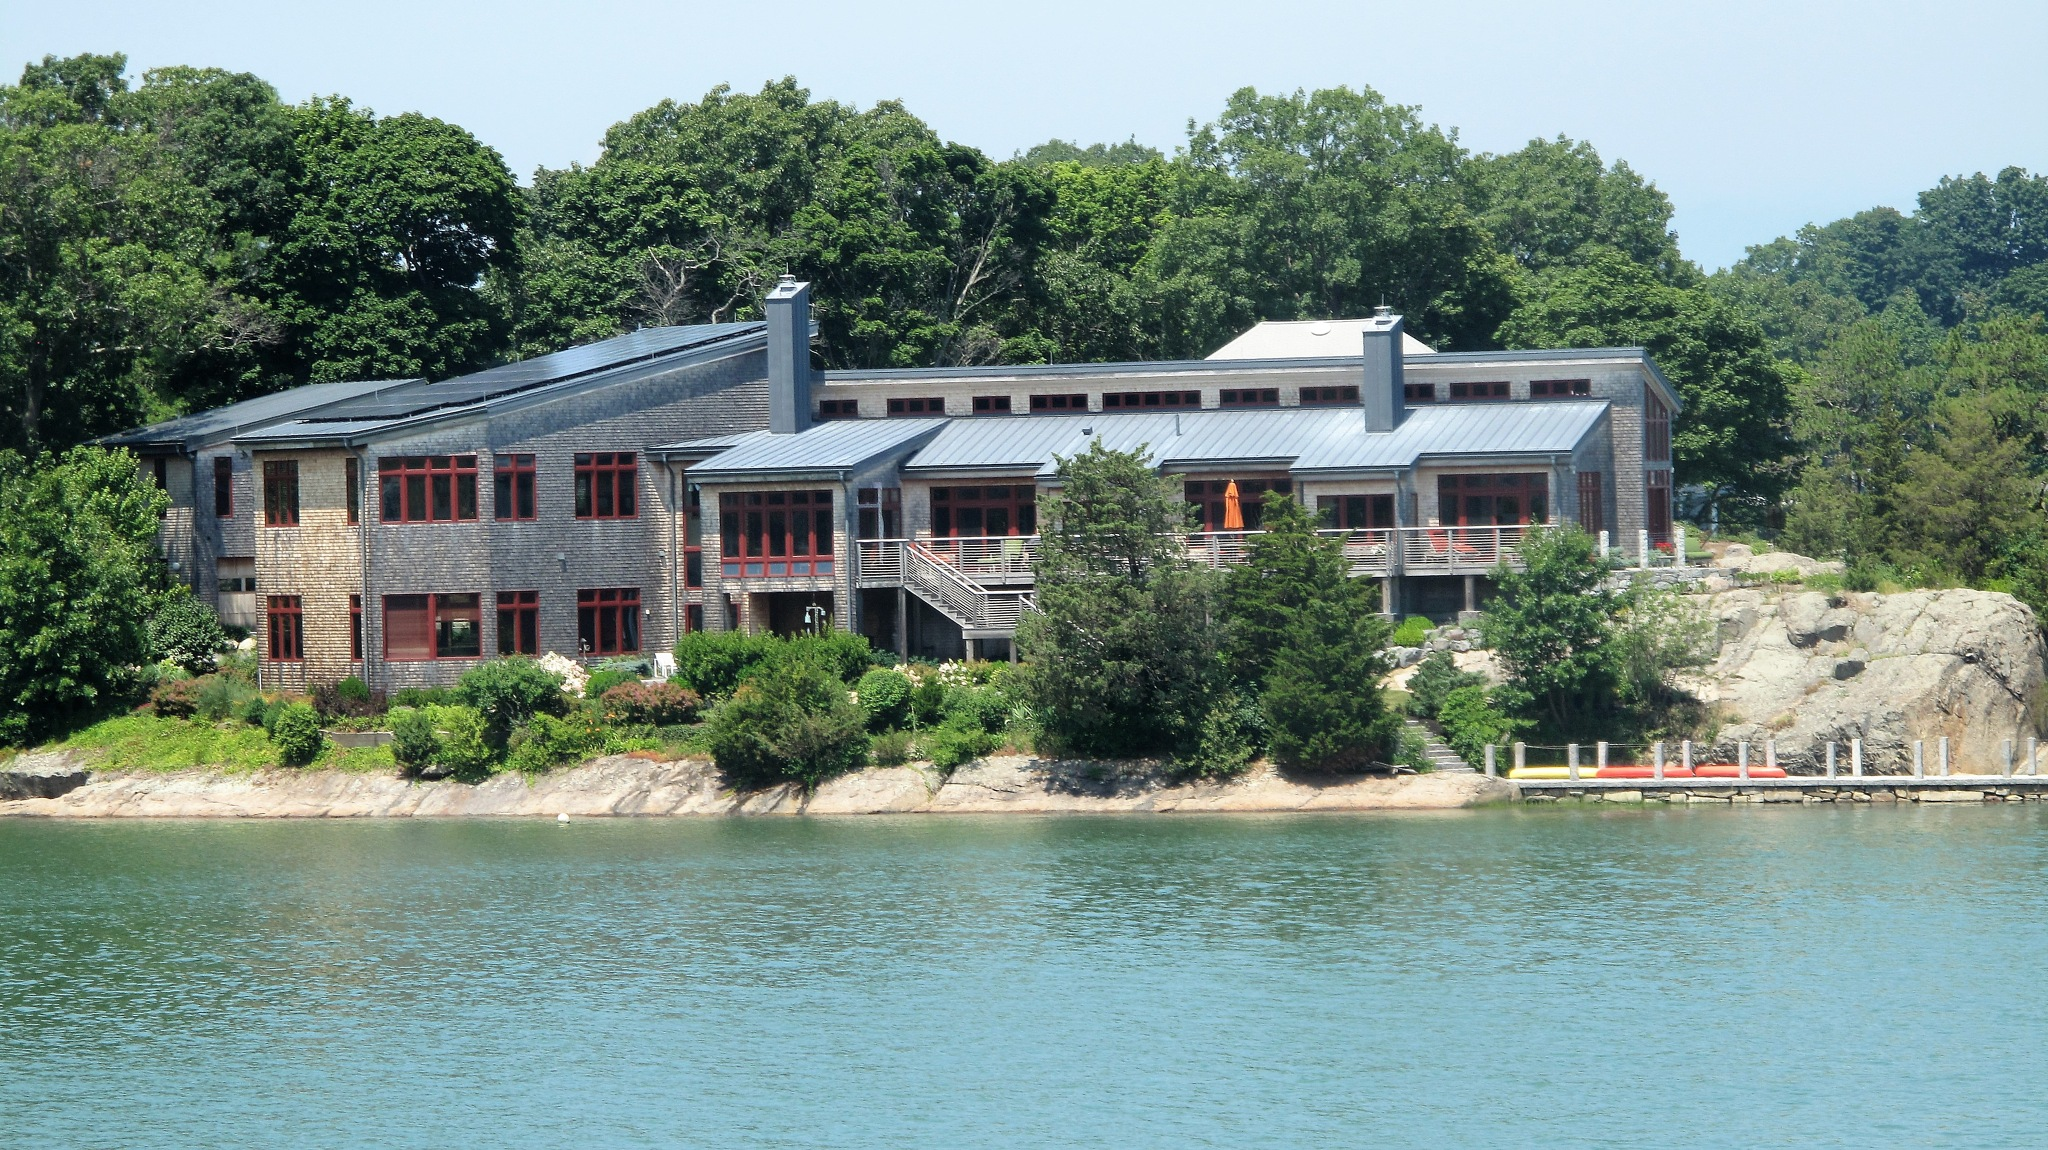 HOUSE ON THE WATER by paulcrimi178